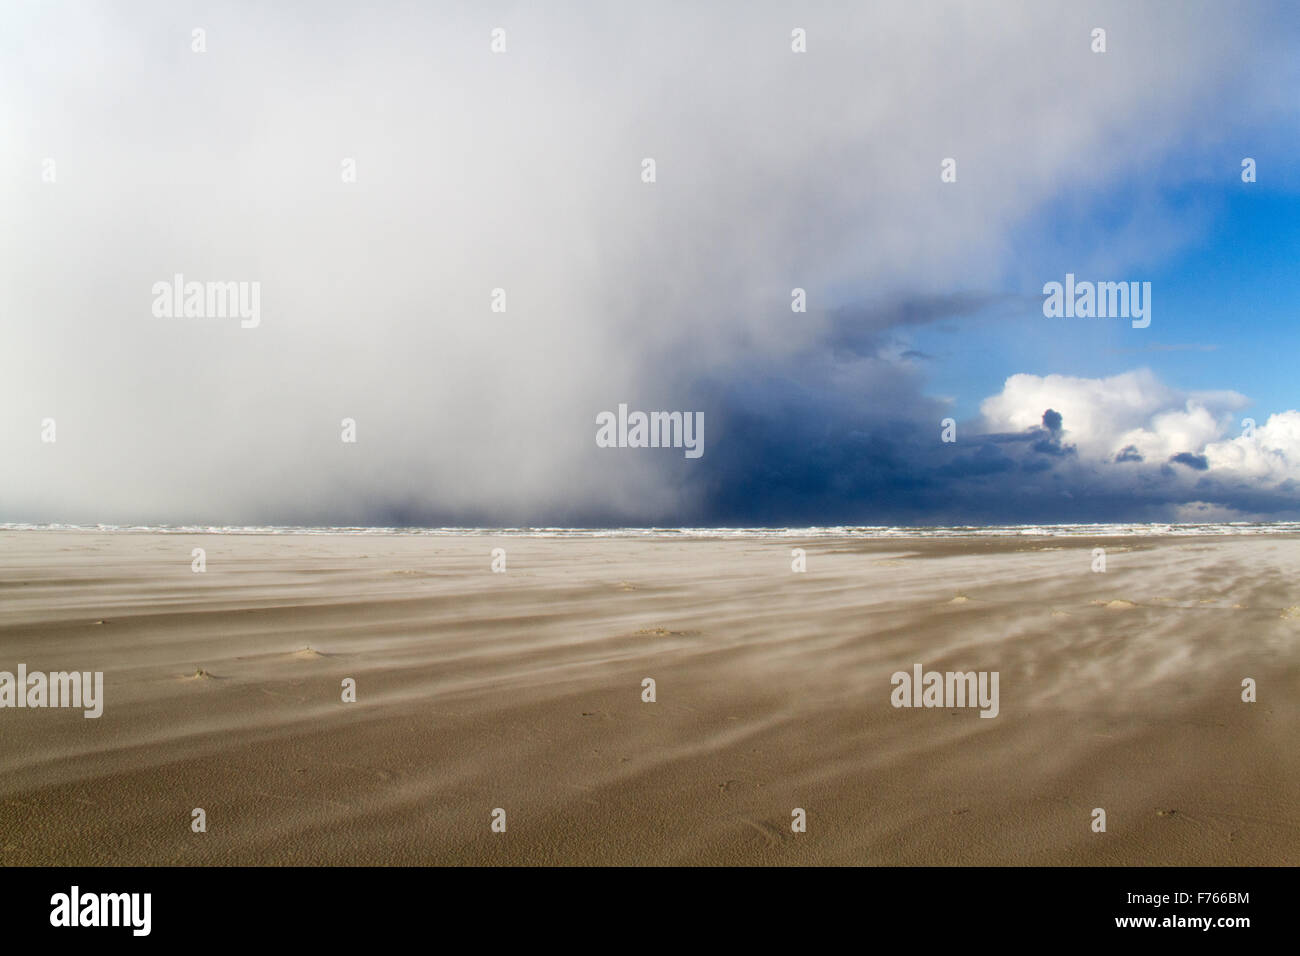 A wild day on the beach: a sandstorm and low clouds above the sea, bringing snow - Stock Image